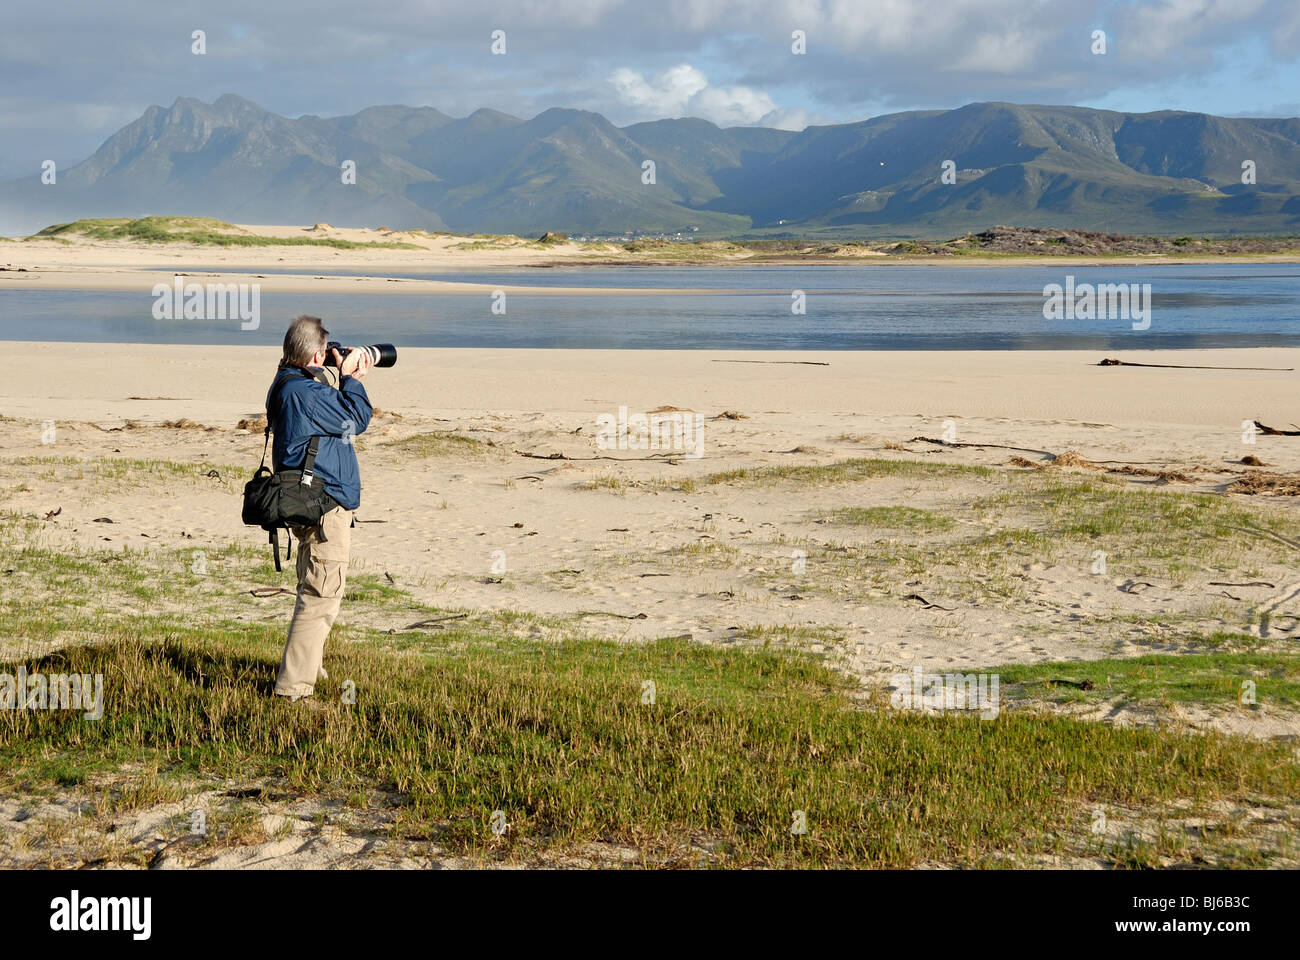 Man taking photo d'un paysage avec le téléobjectif le matin, près de l'estuaire du lac Flamingo Photo Stock